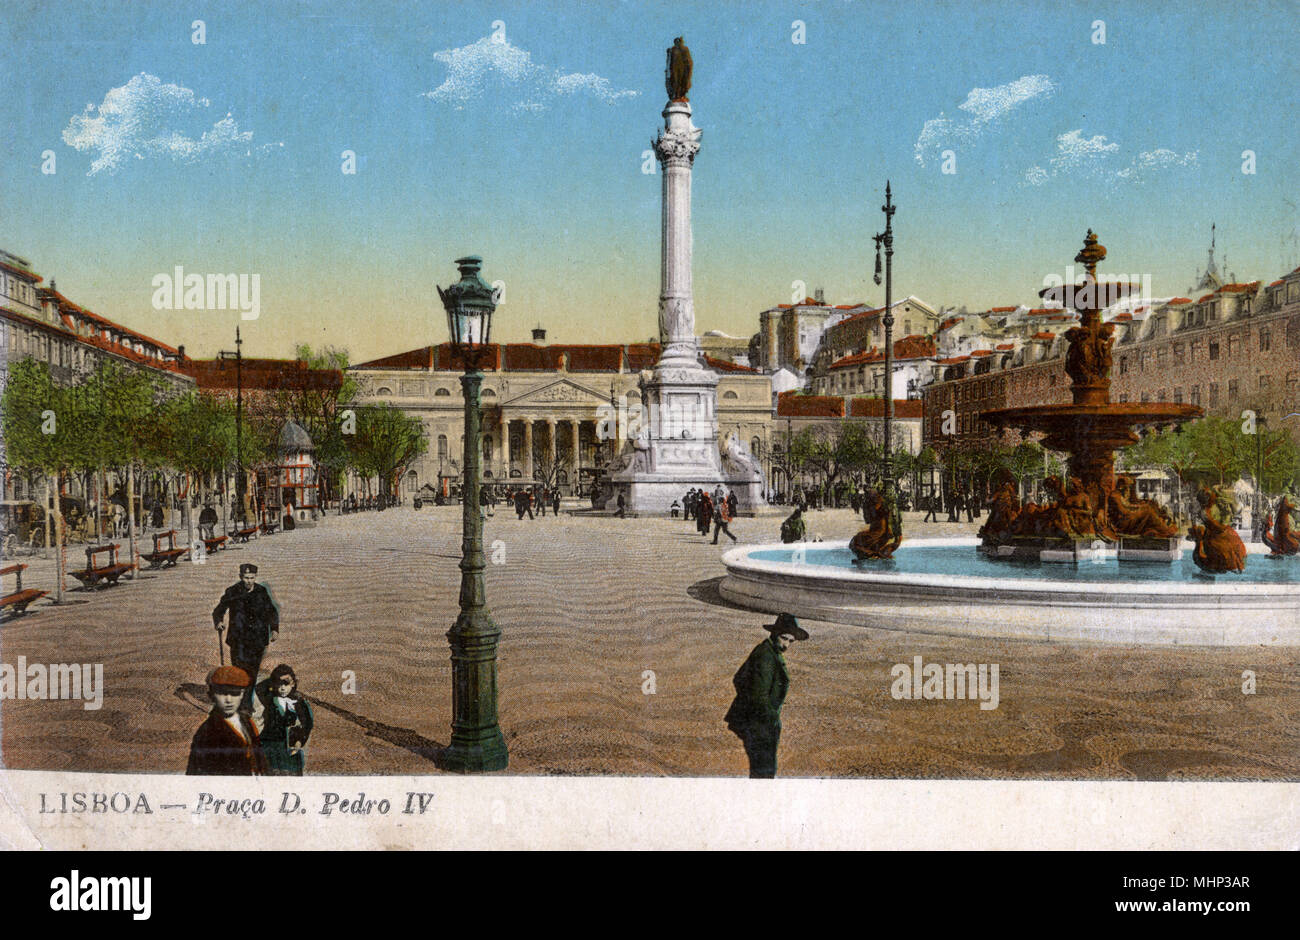 Praca Dom Pedro IV (King Pedro IV Square, also known as Rossio Square), Lisbon, Portugal, with a statue of Pedro IV on a column, the National Theatre behind, and a fountain on the right.      Date: circa 1908 Stock Photo